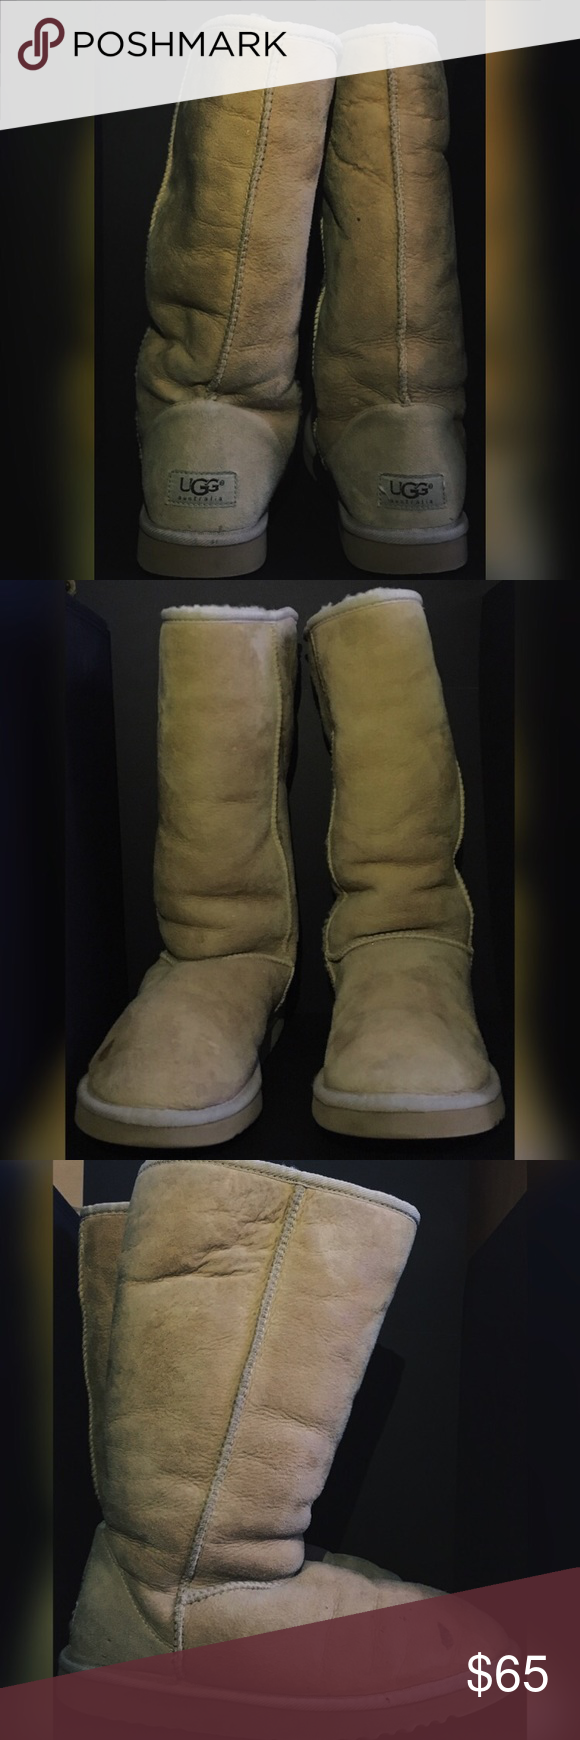 2ecb4a0ac5bd073553c30b28eaa89fa1 - How To Get The Feet Smell Out Of Uggs